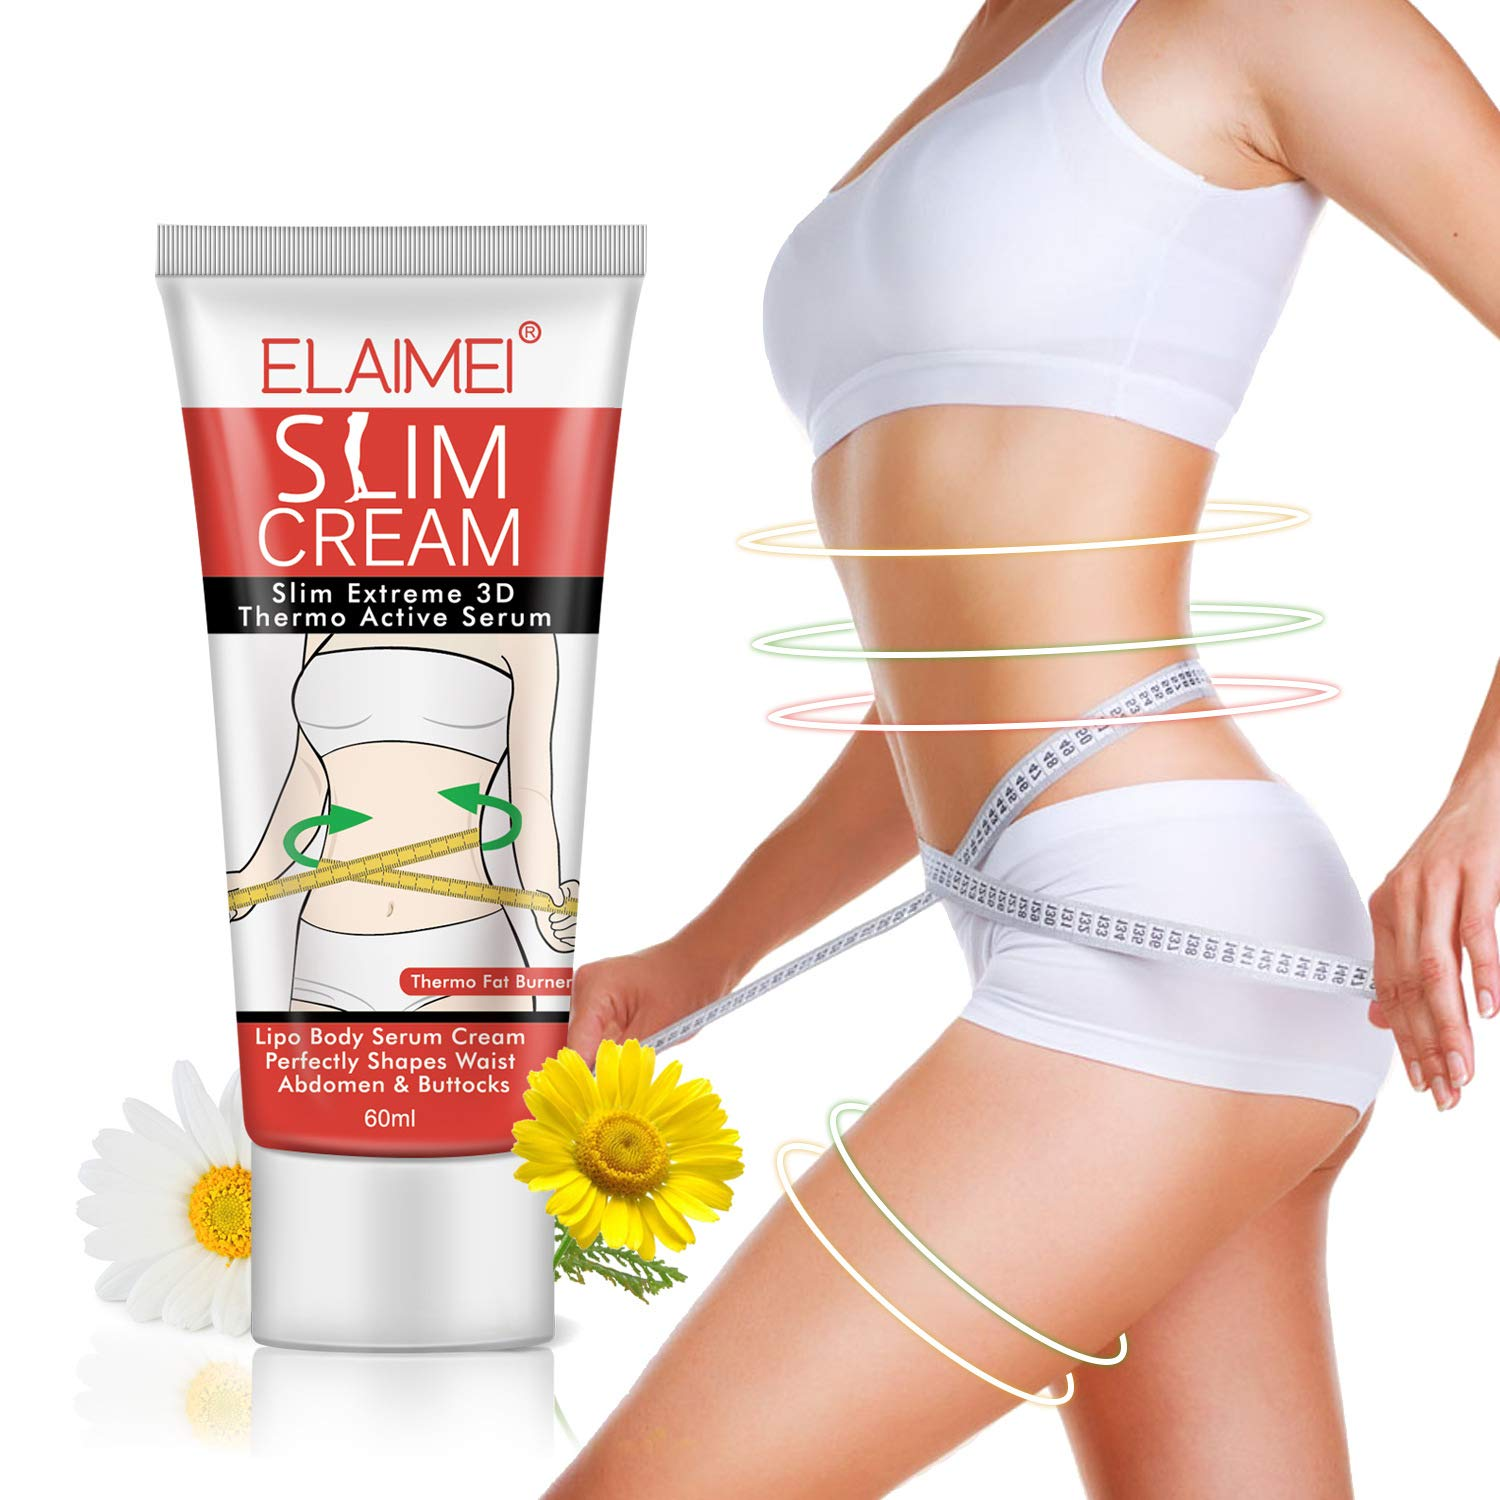 Bath & Shower Beauty & Health 1pcs Slim Massage Cream Slimming Cream Leg Body Waist Weight Loss Fat Burner Weight Loss Anti-cellulite Tight Shaping Body